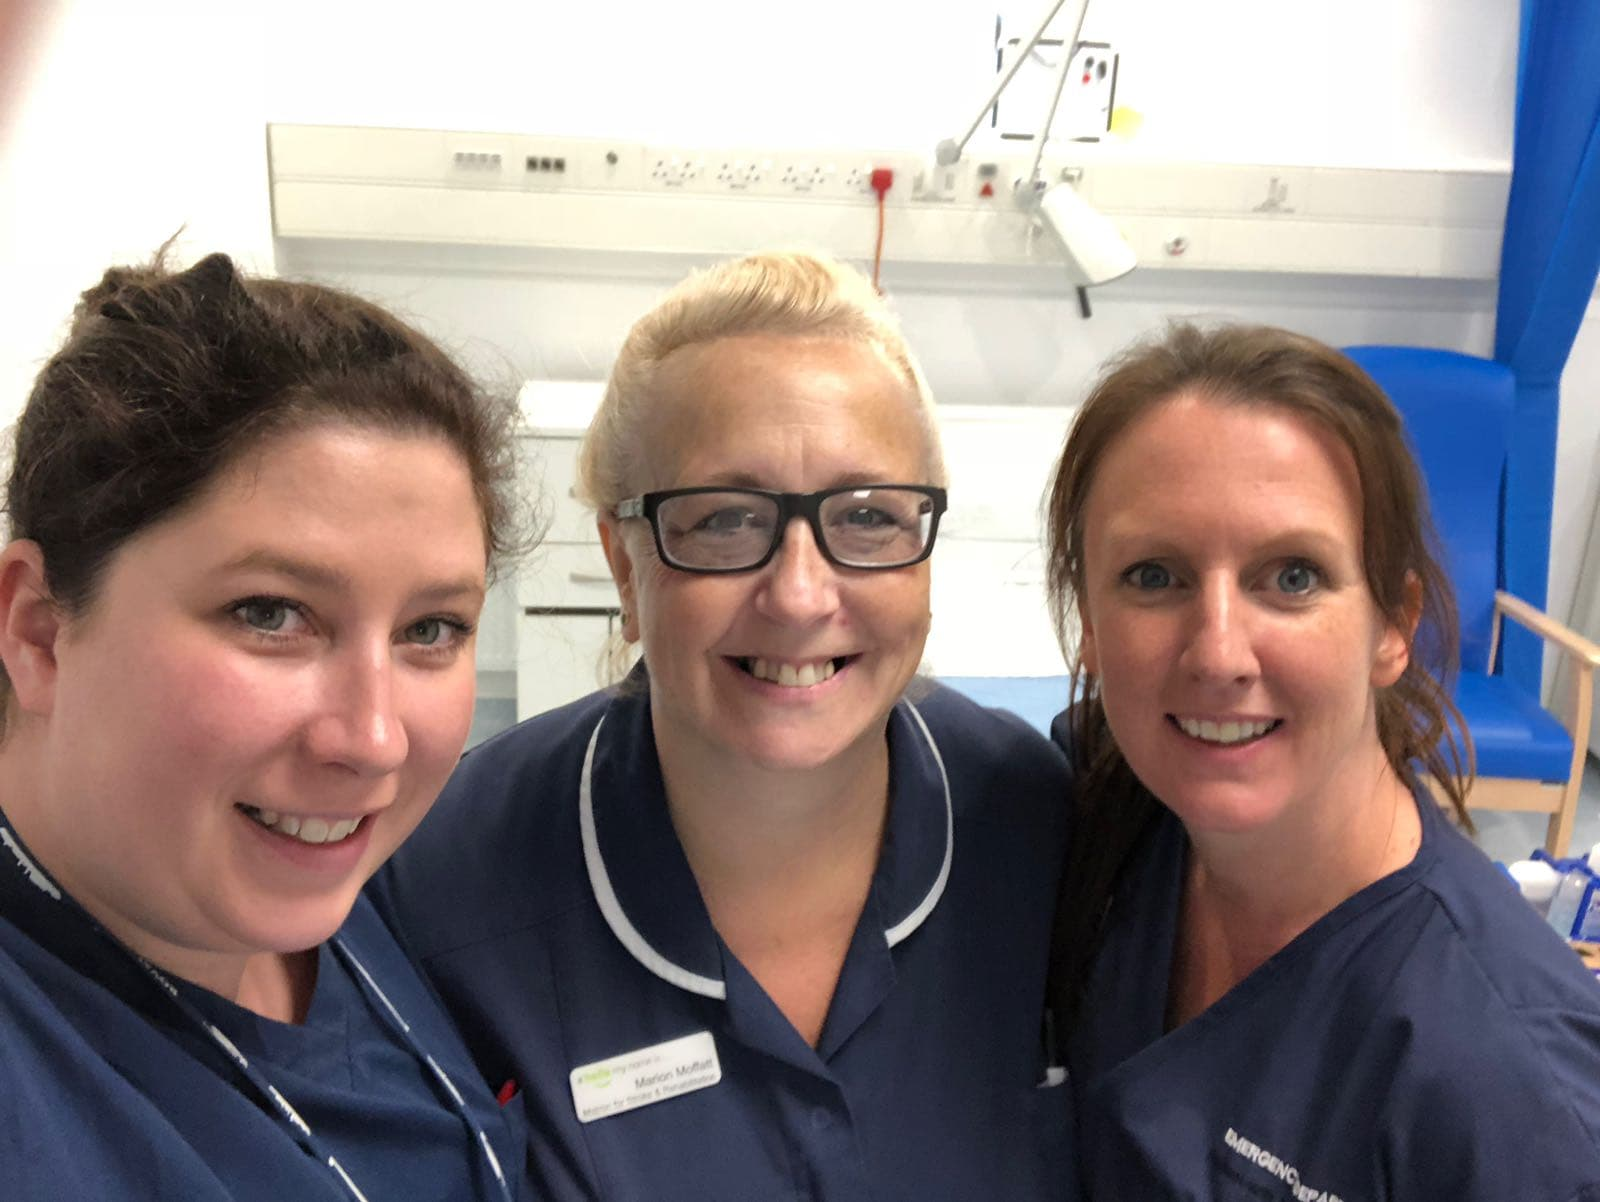 PHT staff take up teaching role at University of Portsmouth